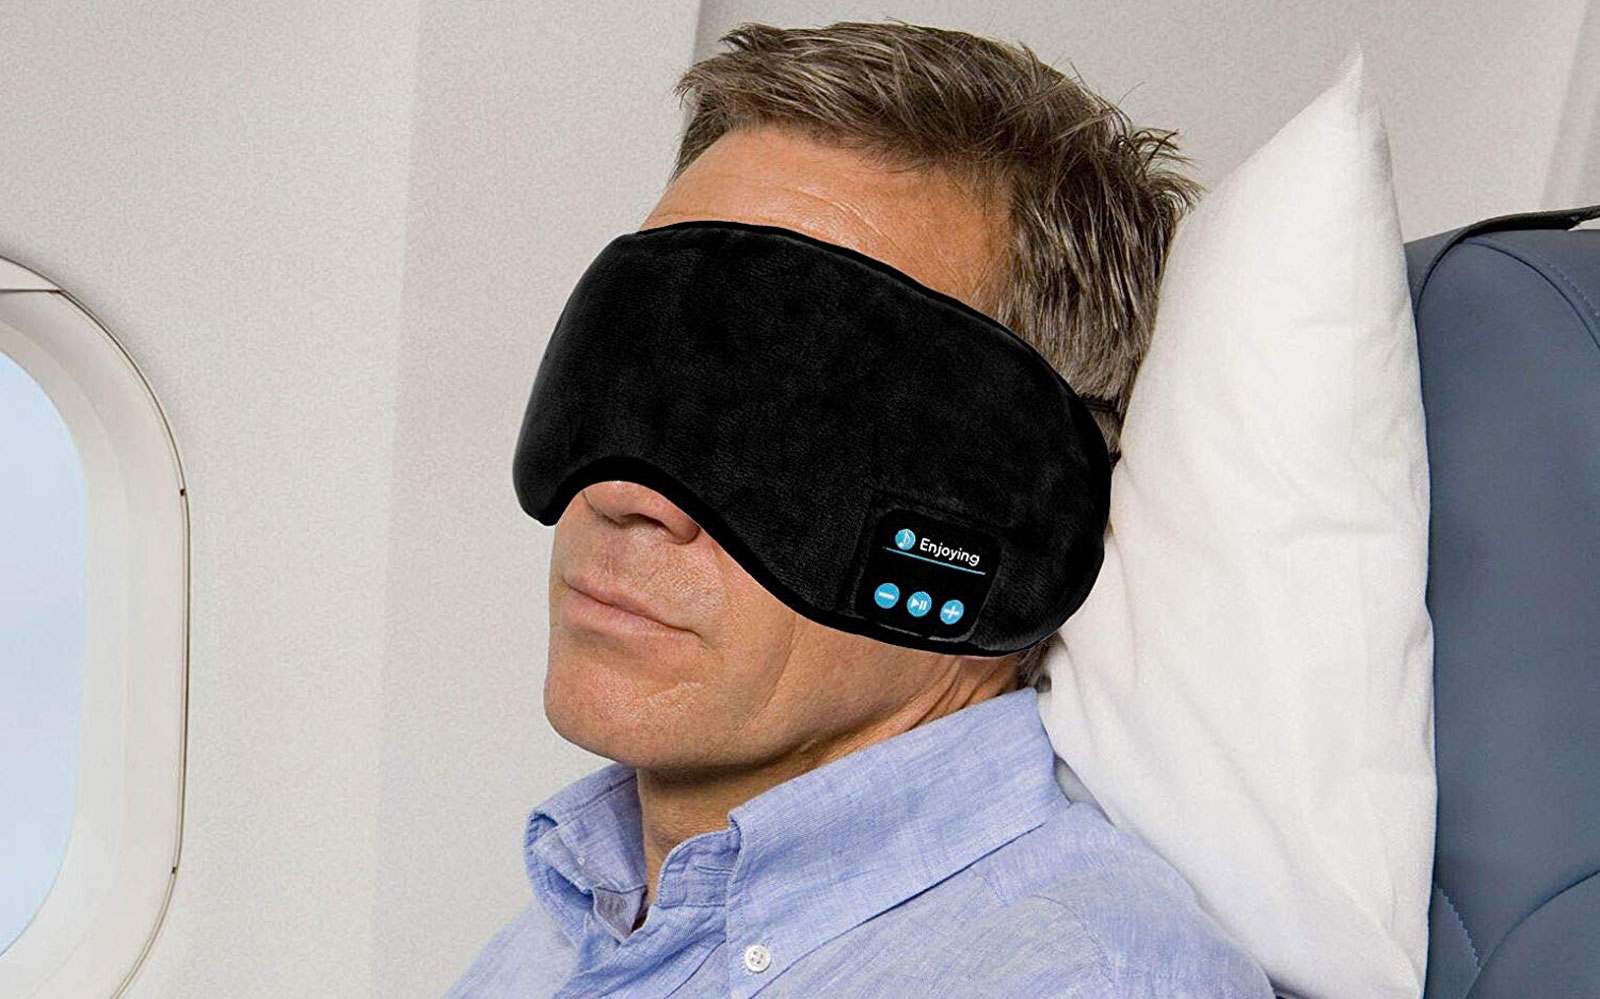 Black Sleep Mask on Person